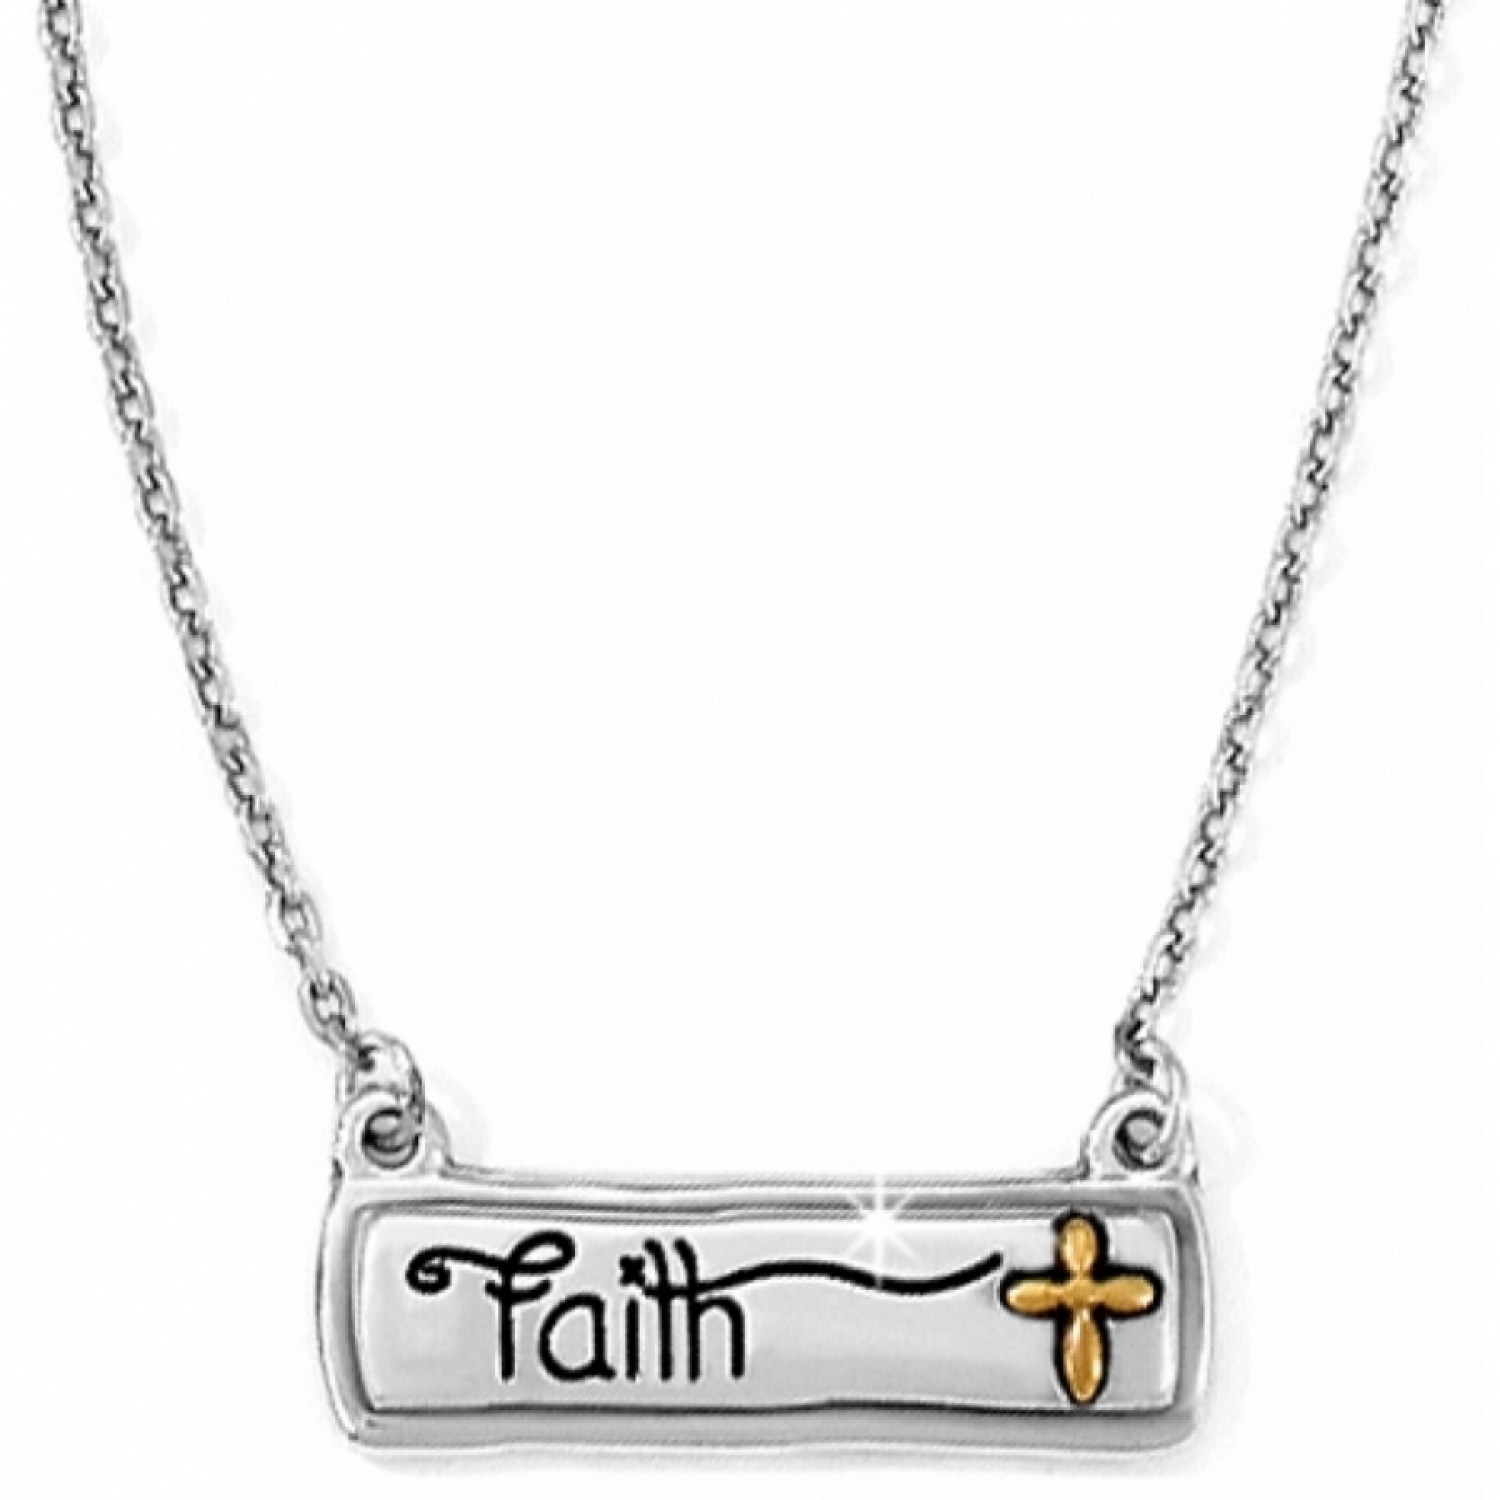 note tags note tags faith necklace necklace note cards